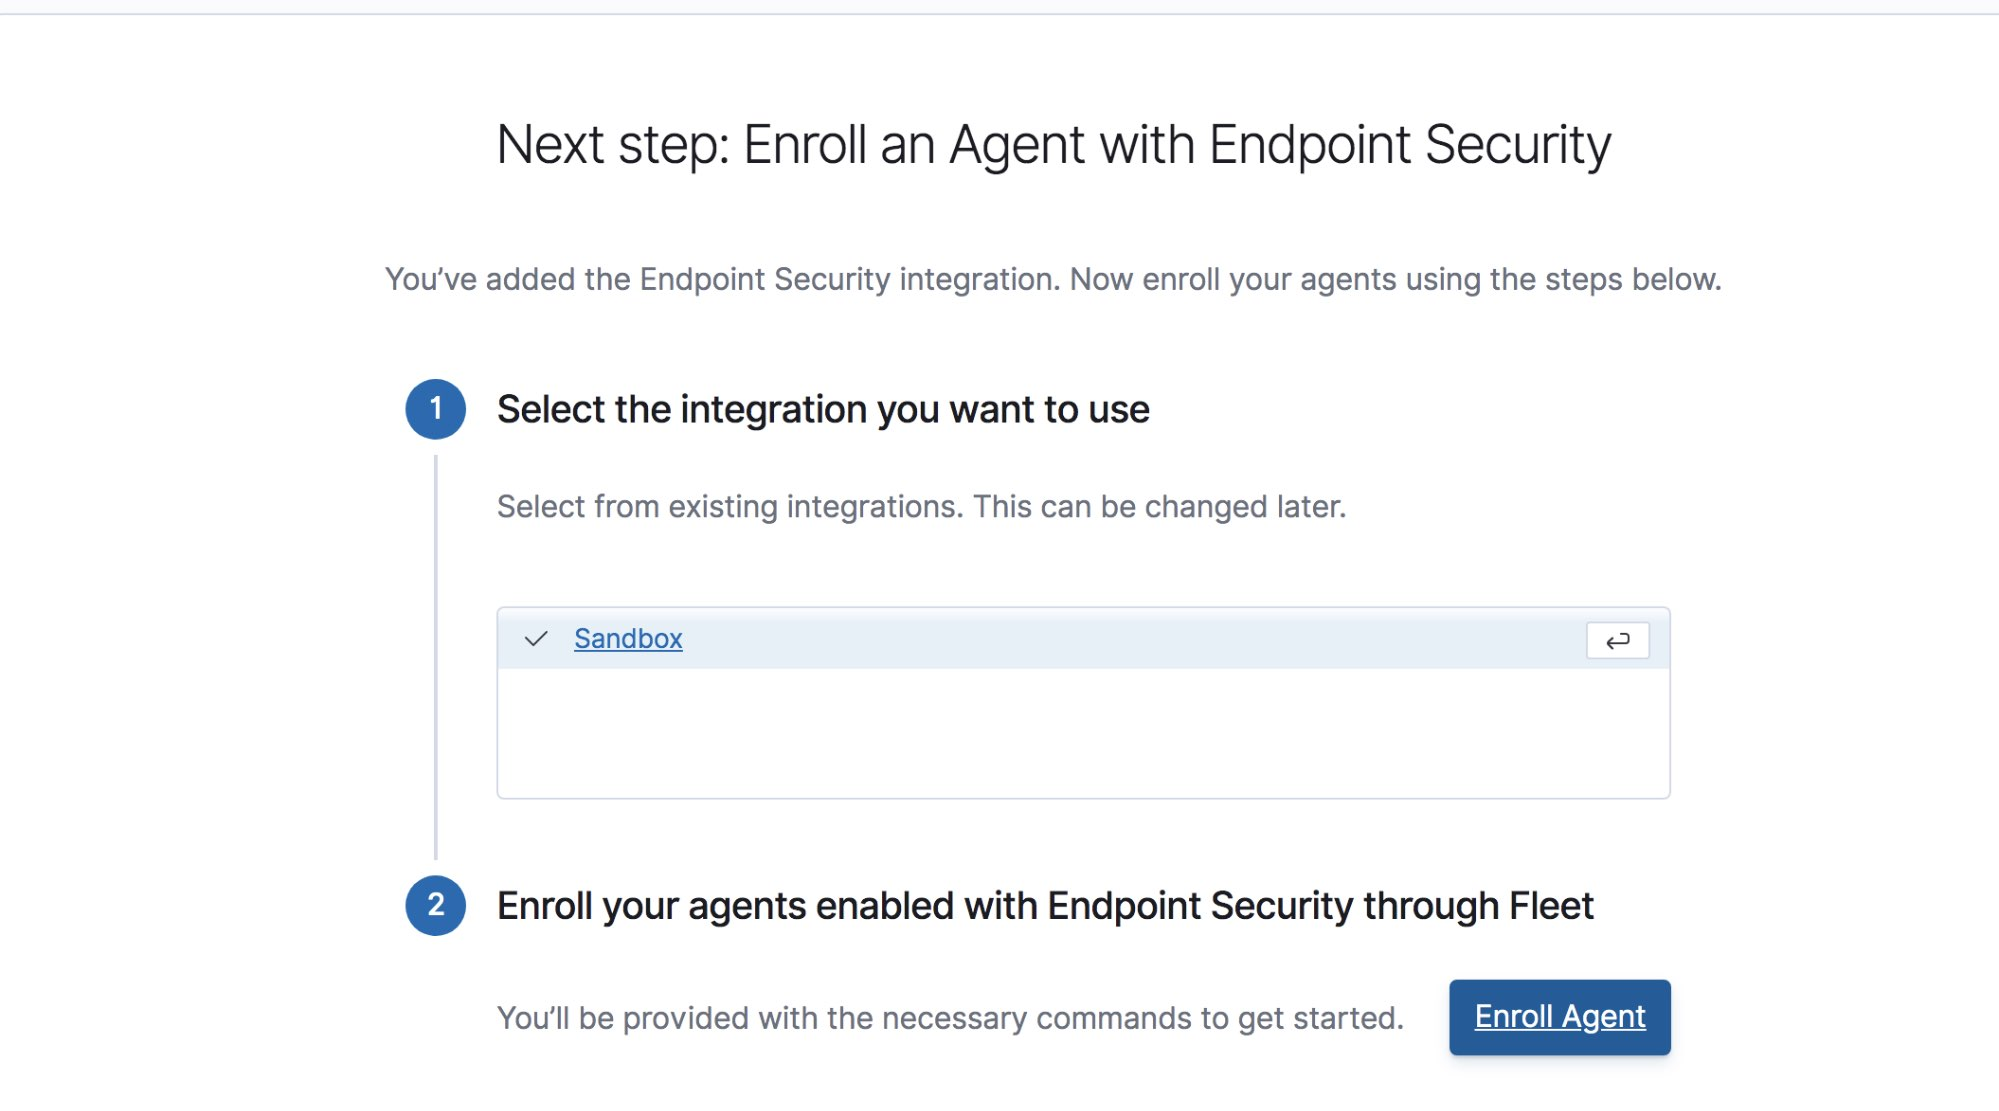 Enroll an agent with Endpoint Security